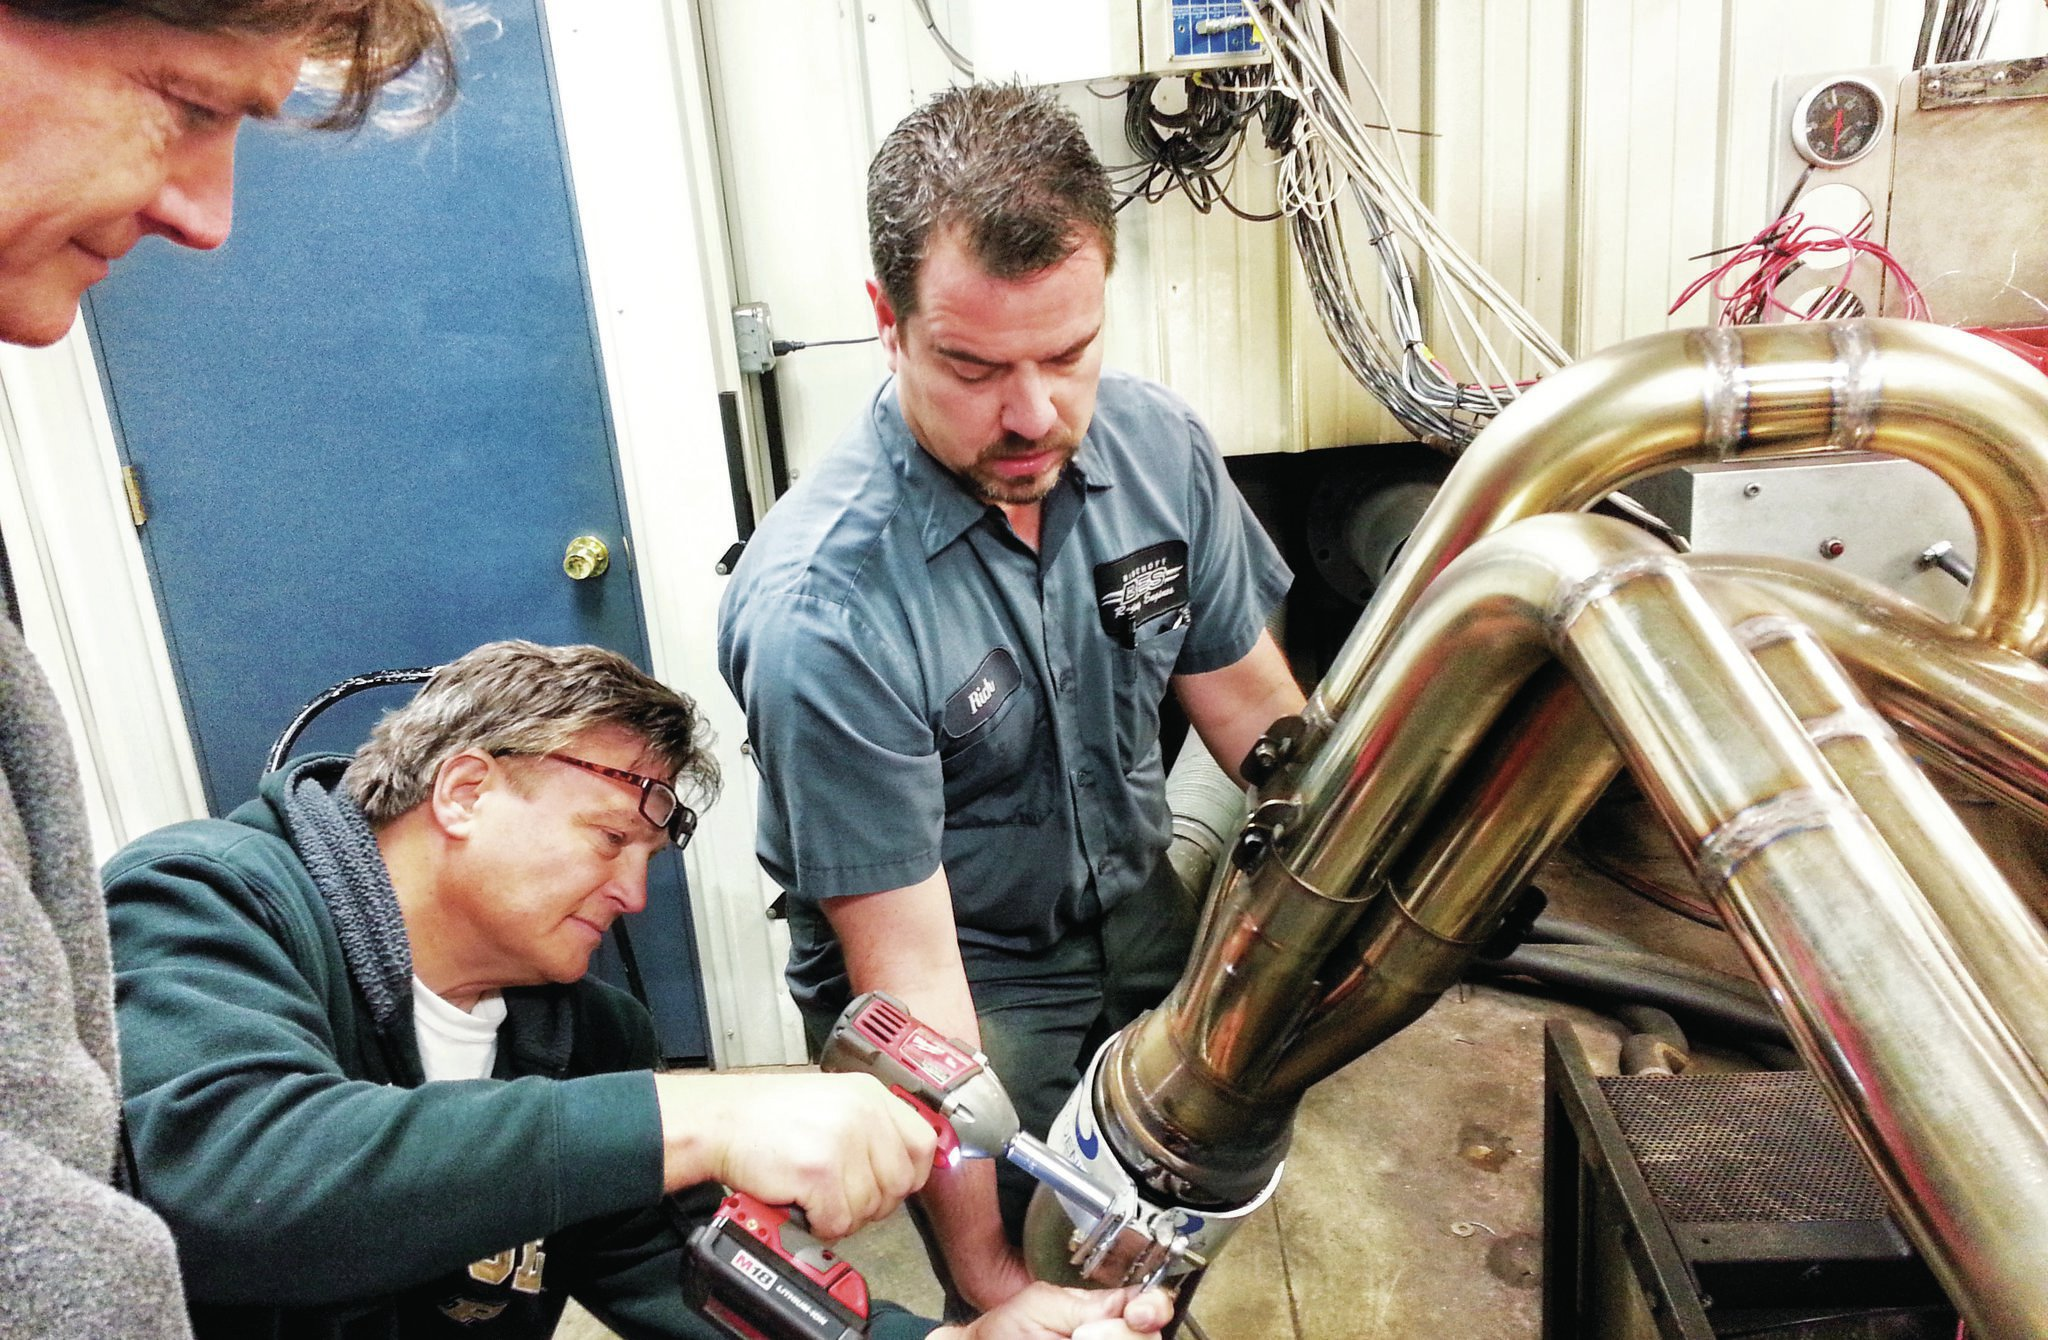 Lynn McCarty adjusts the header V-clamp while Rich, the dyno operator at BES holds the pipes up. Lynn's twin brother Stacy is observing their progress.